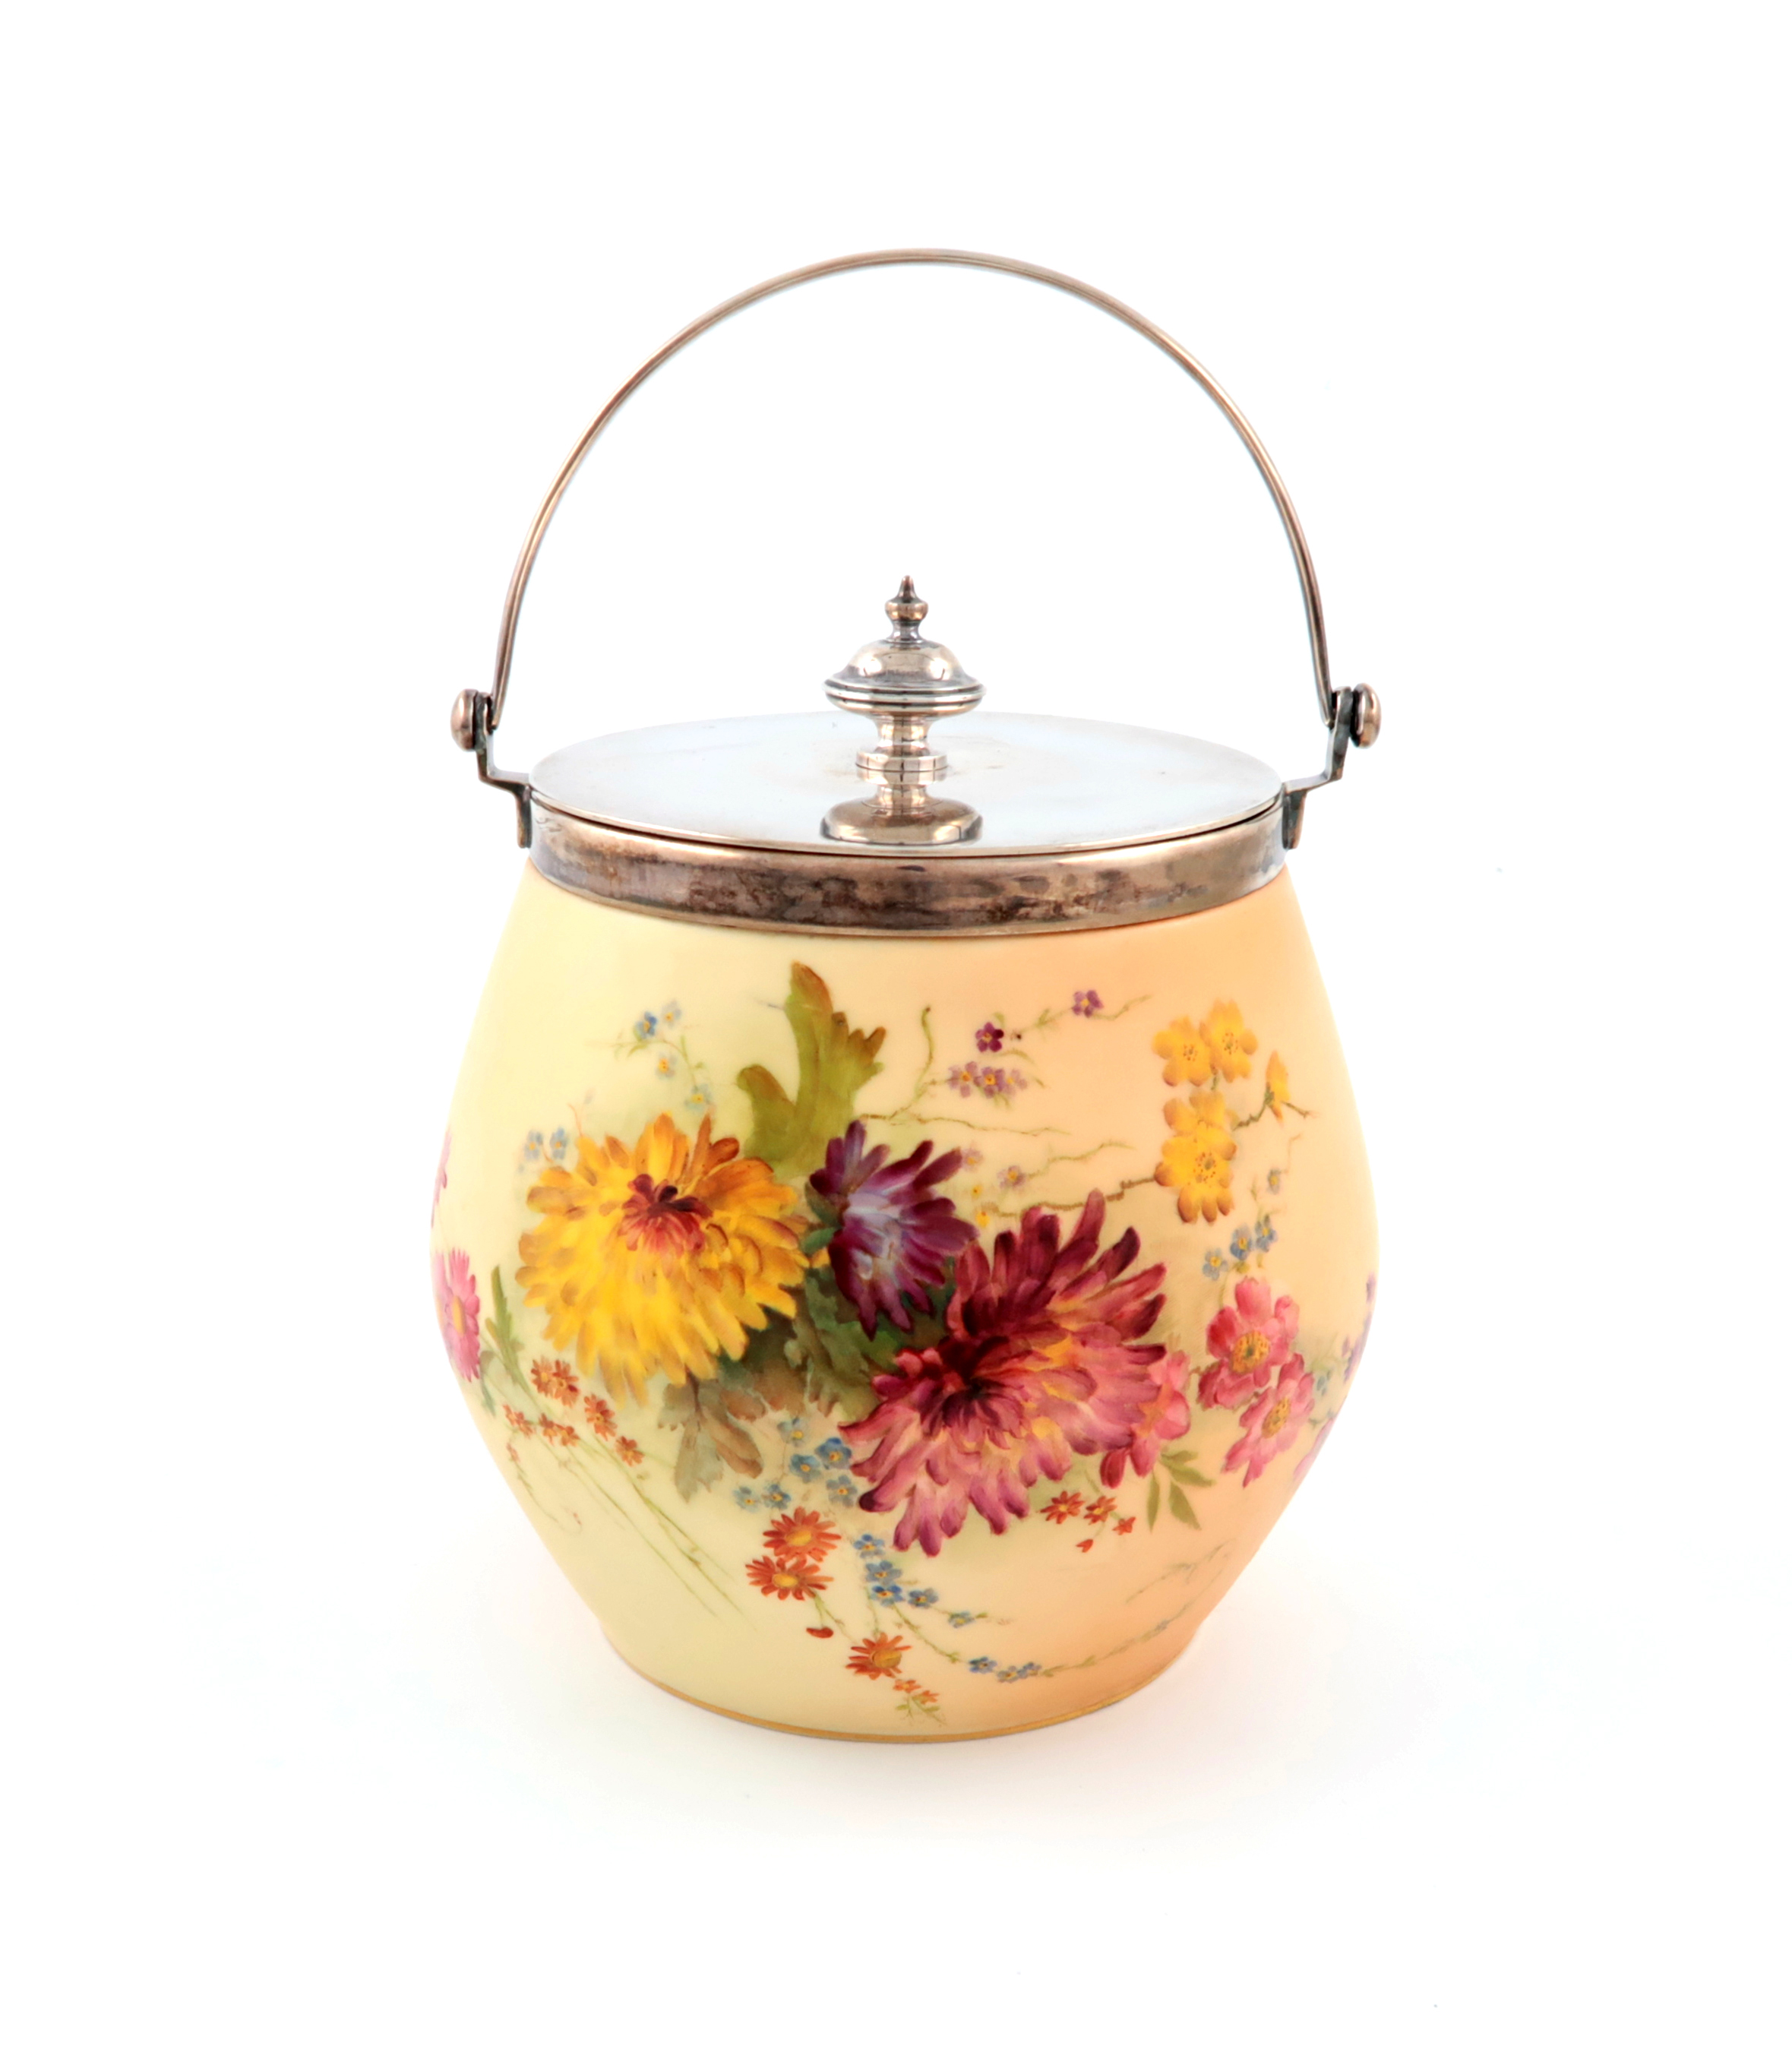 Lot 711 - An Edwardian silver-mounted Royal Worcester biscuit barrel, the mounts by James Deakin and Sons,